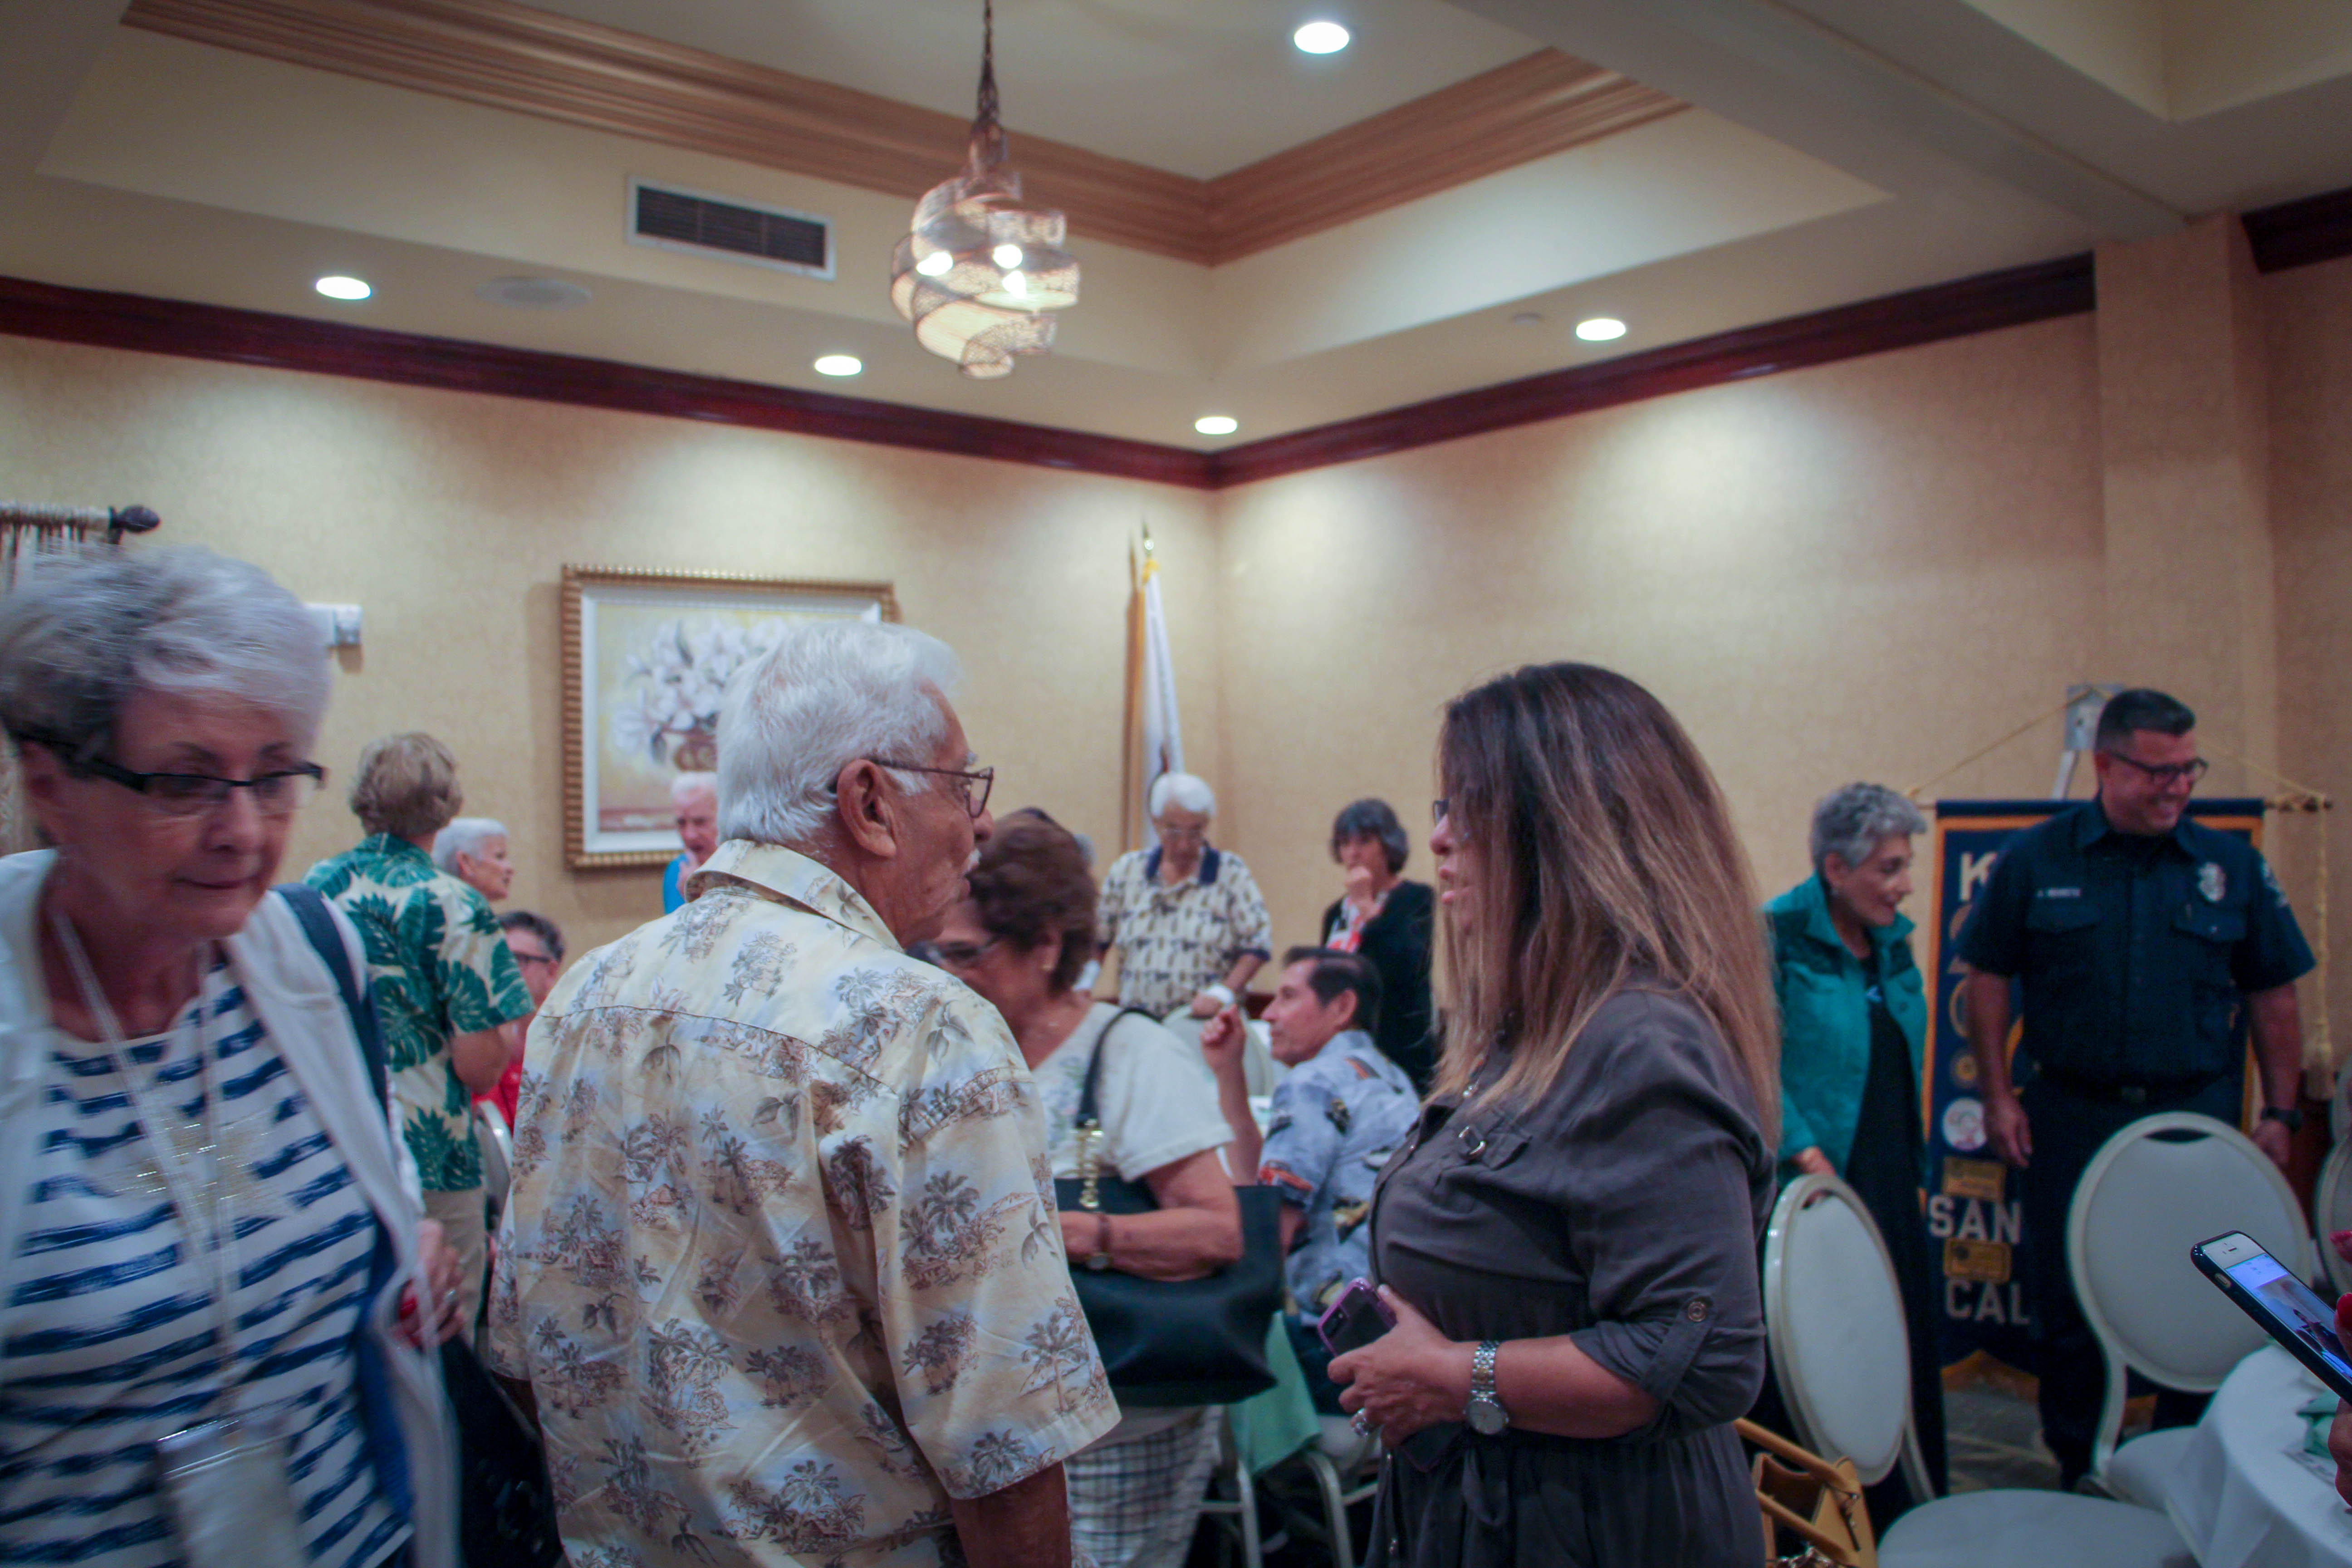 The crowd after lunching at the San Gabriel Hilton.